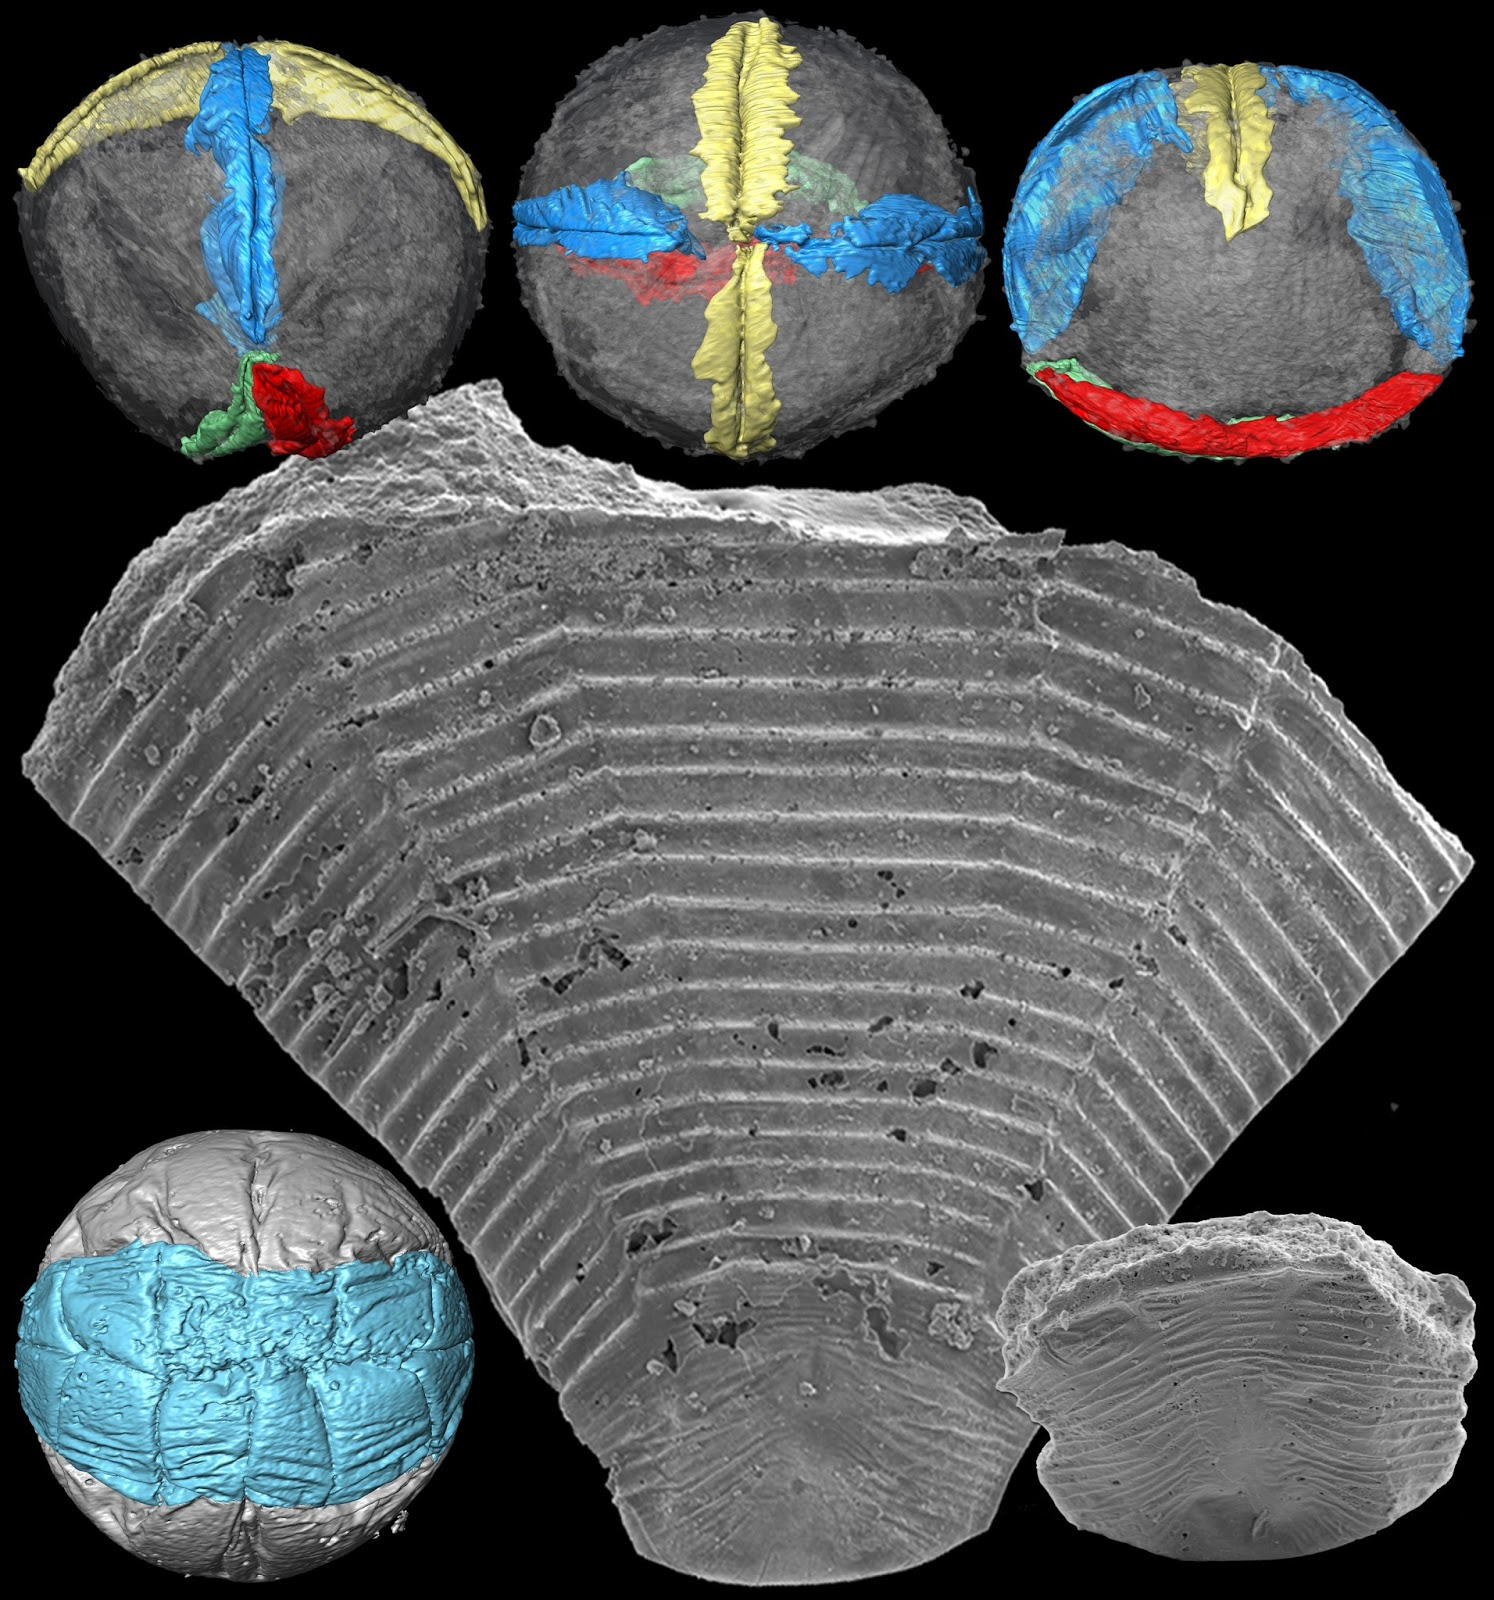 Fossil orphans reunited with their parents after half a billion years